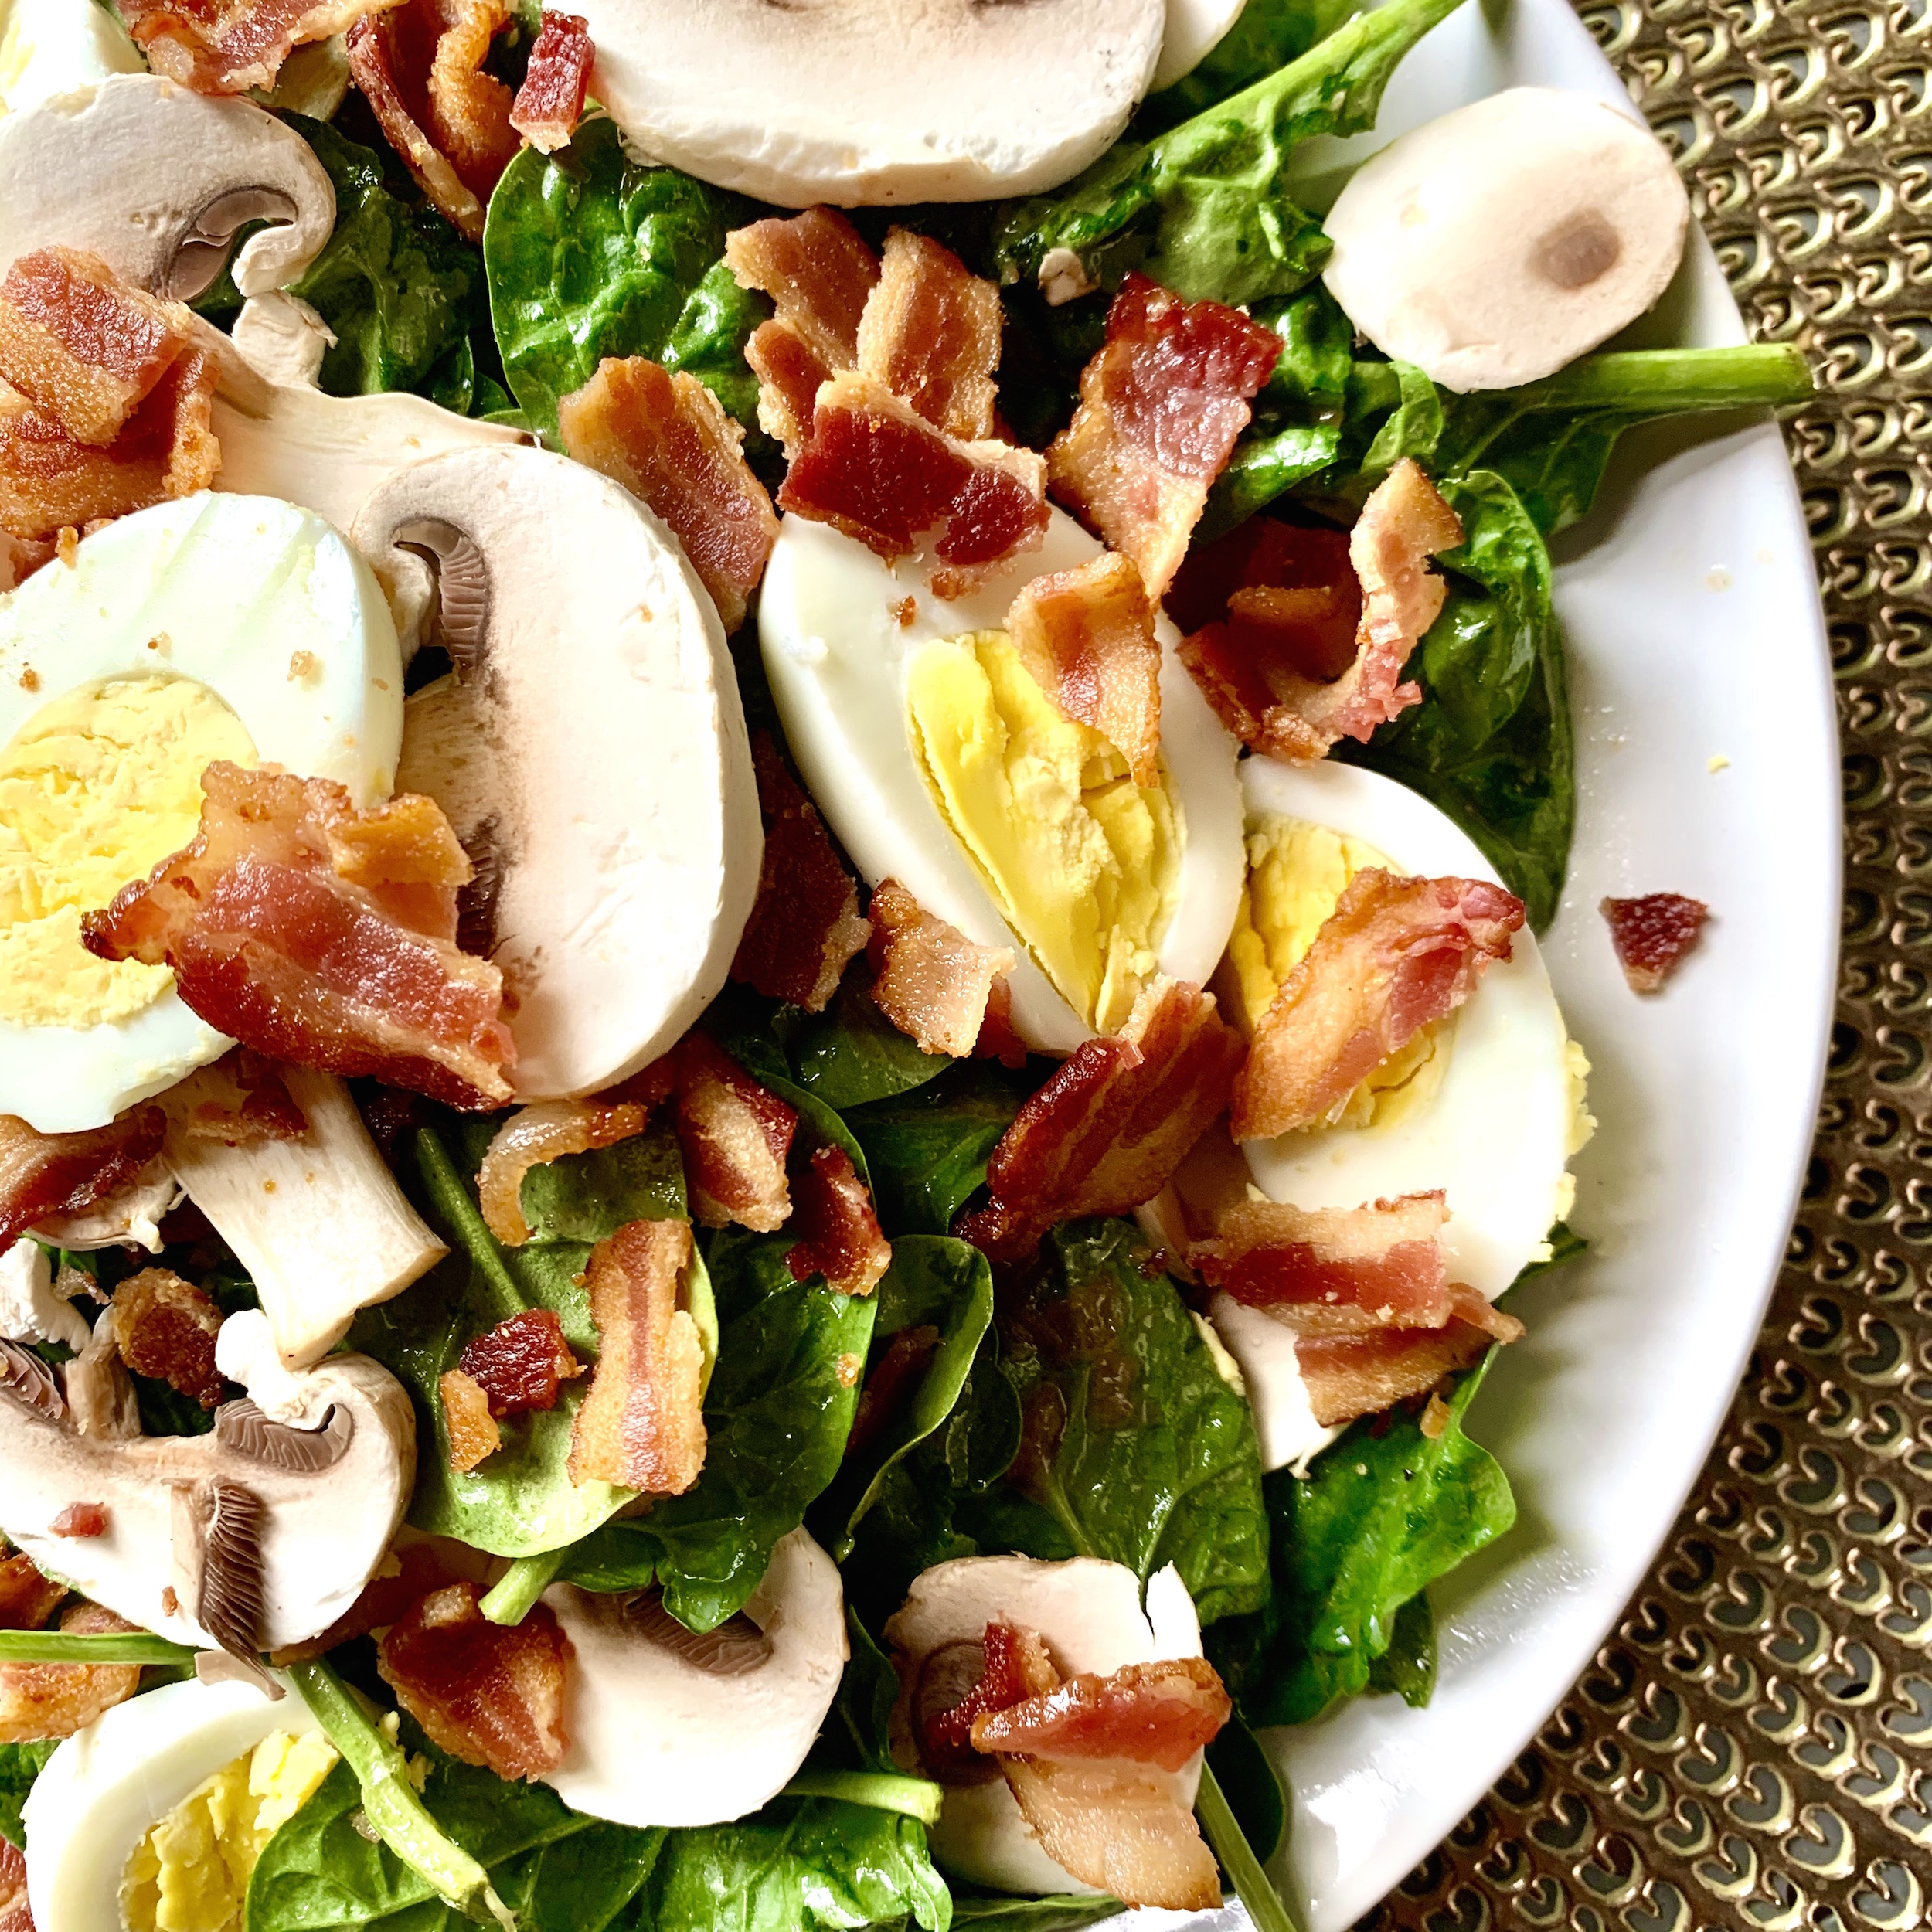 White plate on a gold placemat with spinach salad topped with sliced hard boiled eggs, sliced mushrooms and crumbled bacon.